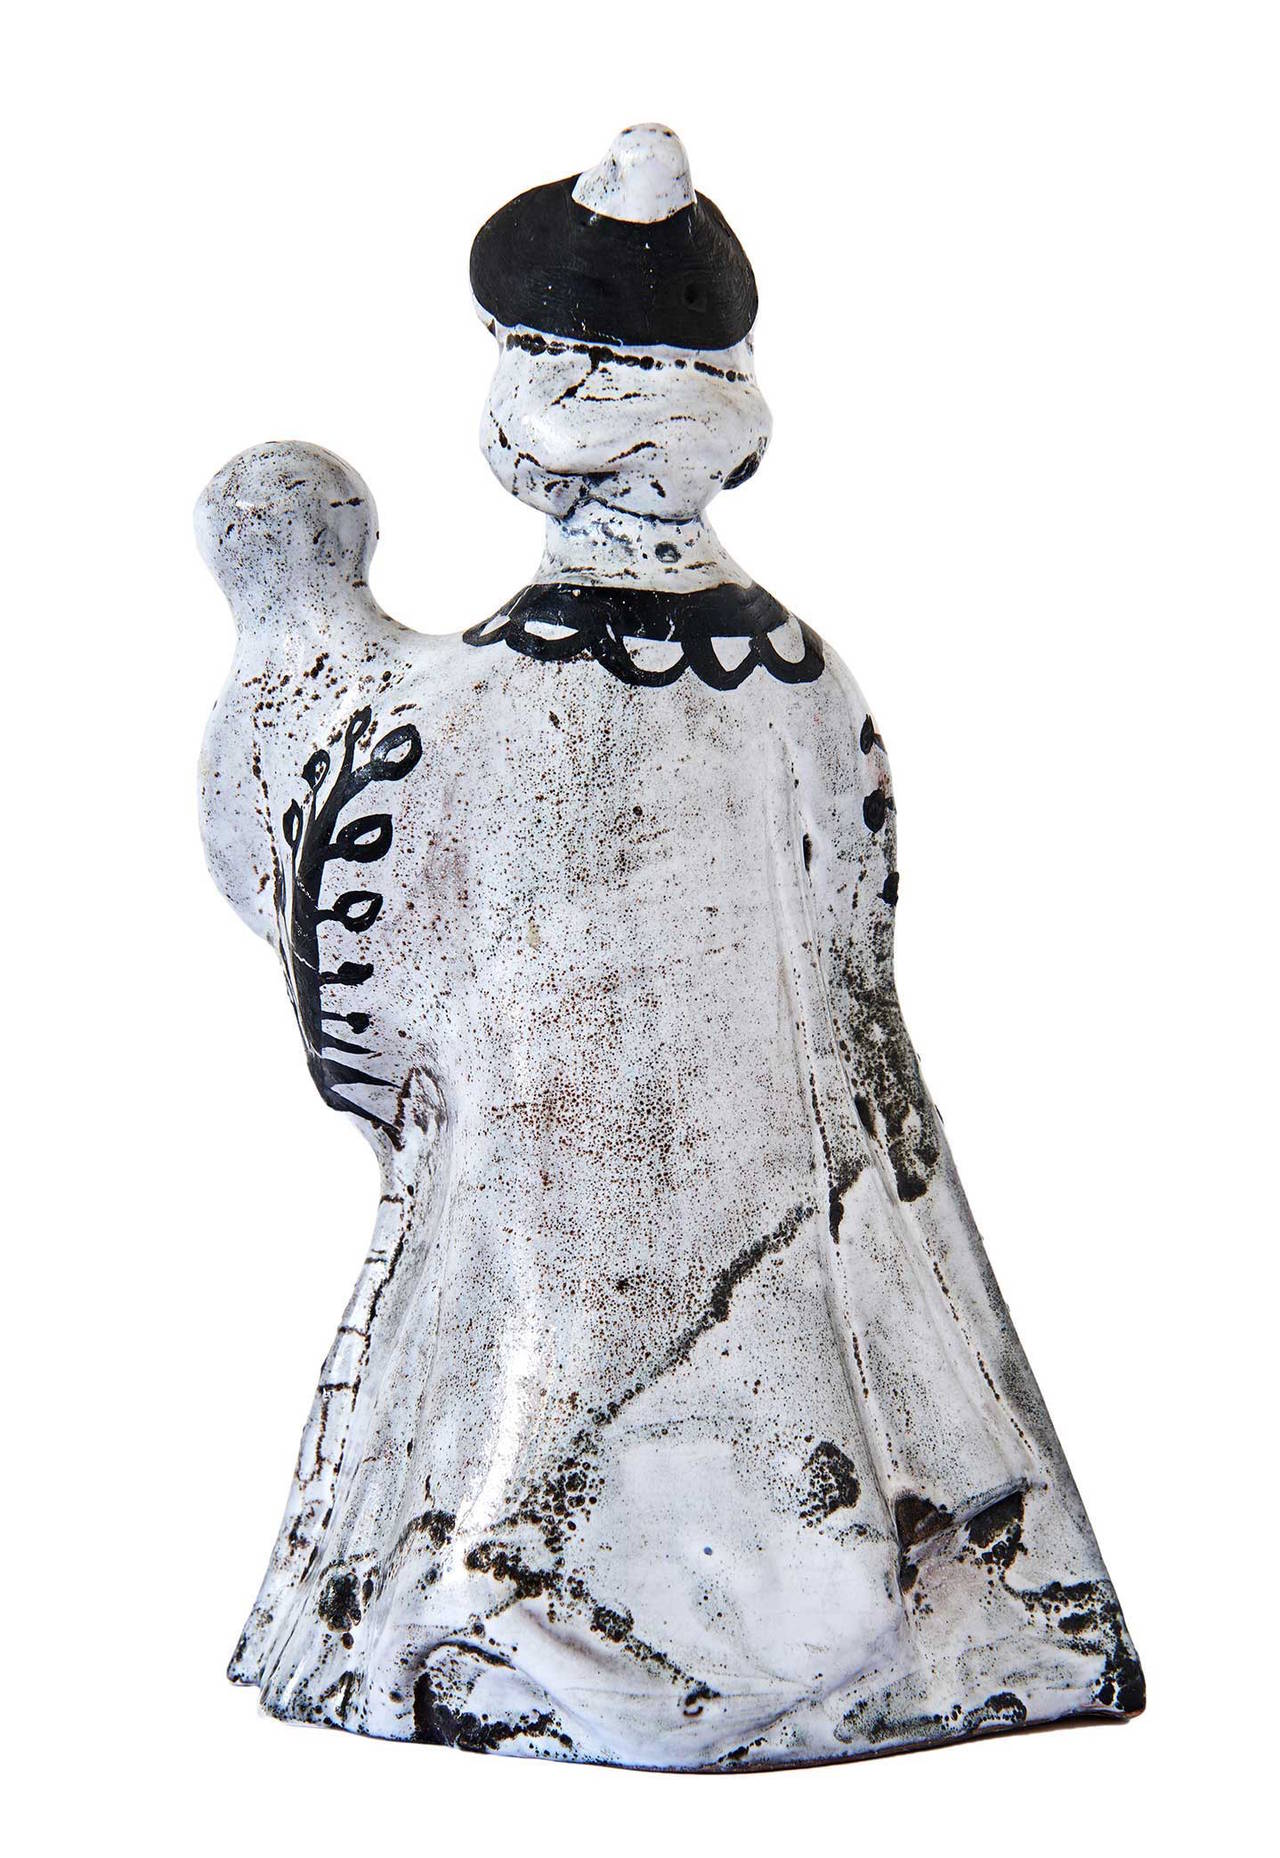 French Ceramic Sculpture by Roger Capron For Sale